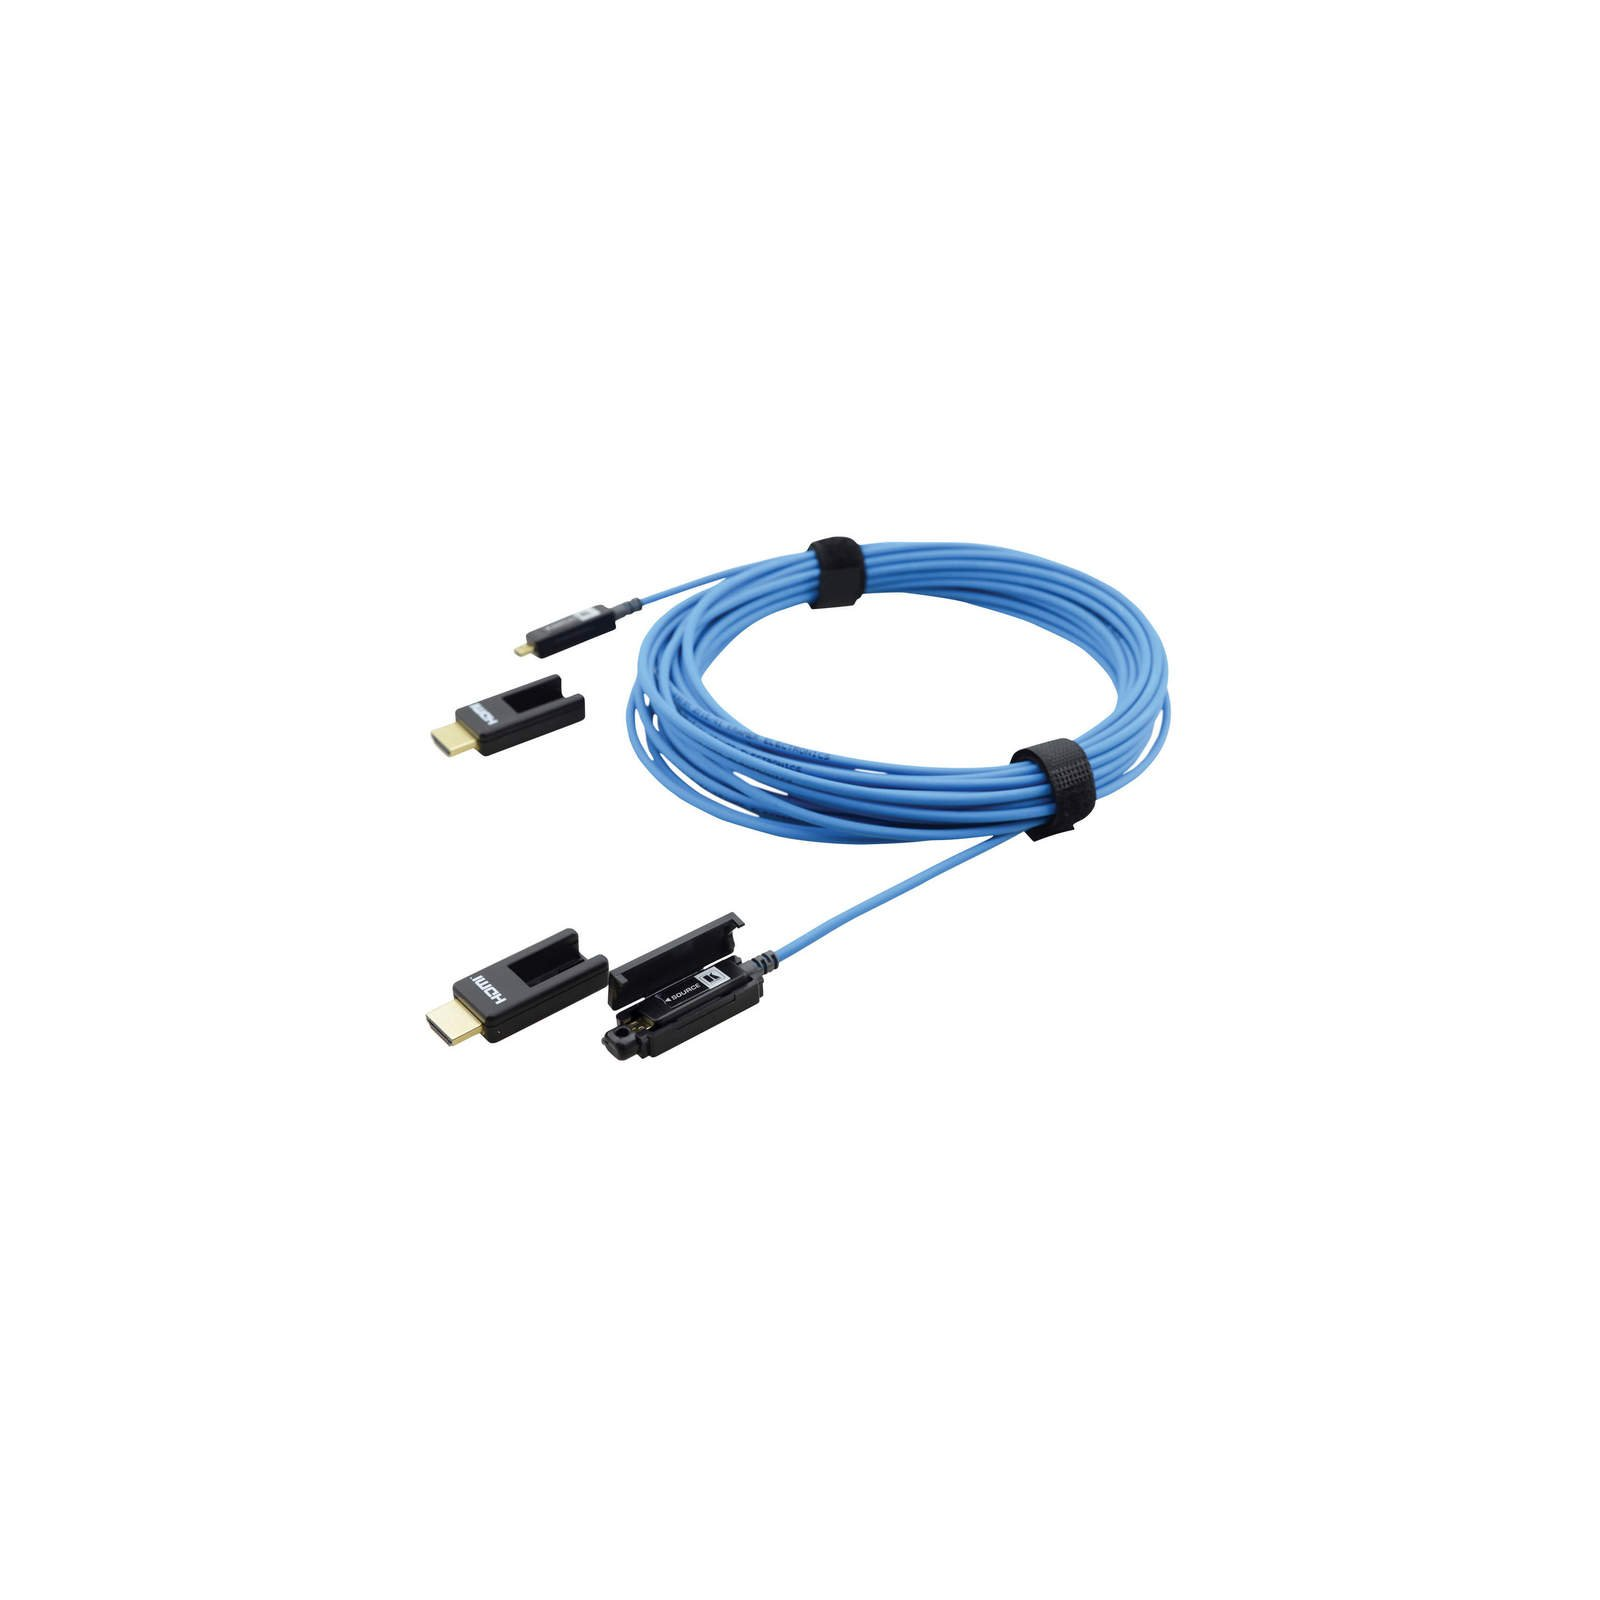 Kramer CP-AOCH/XL-66 | 66 Foot Fiber Optic HDMI Plenum Cable Removable Connectors by Kramer